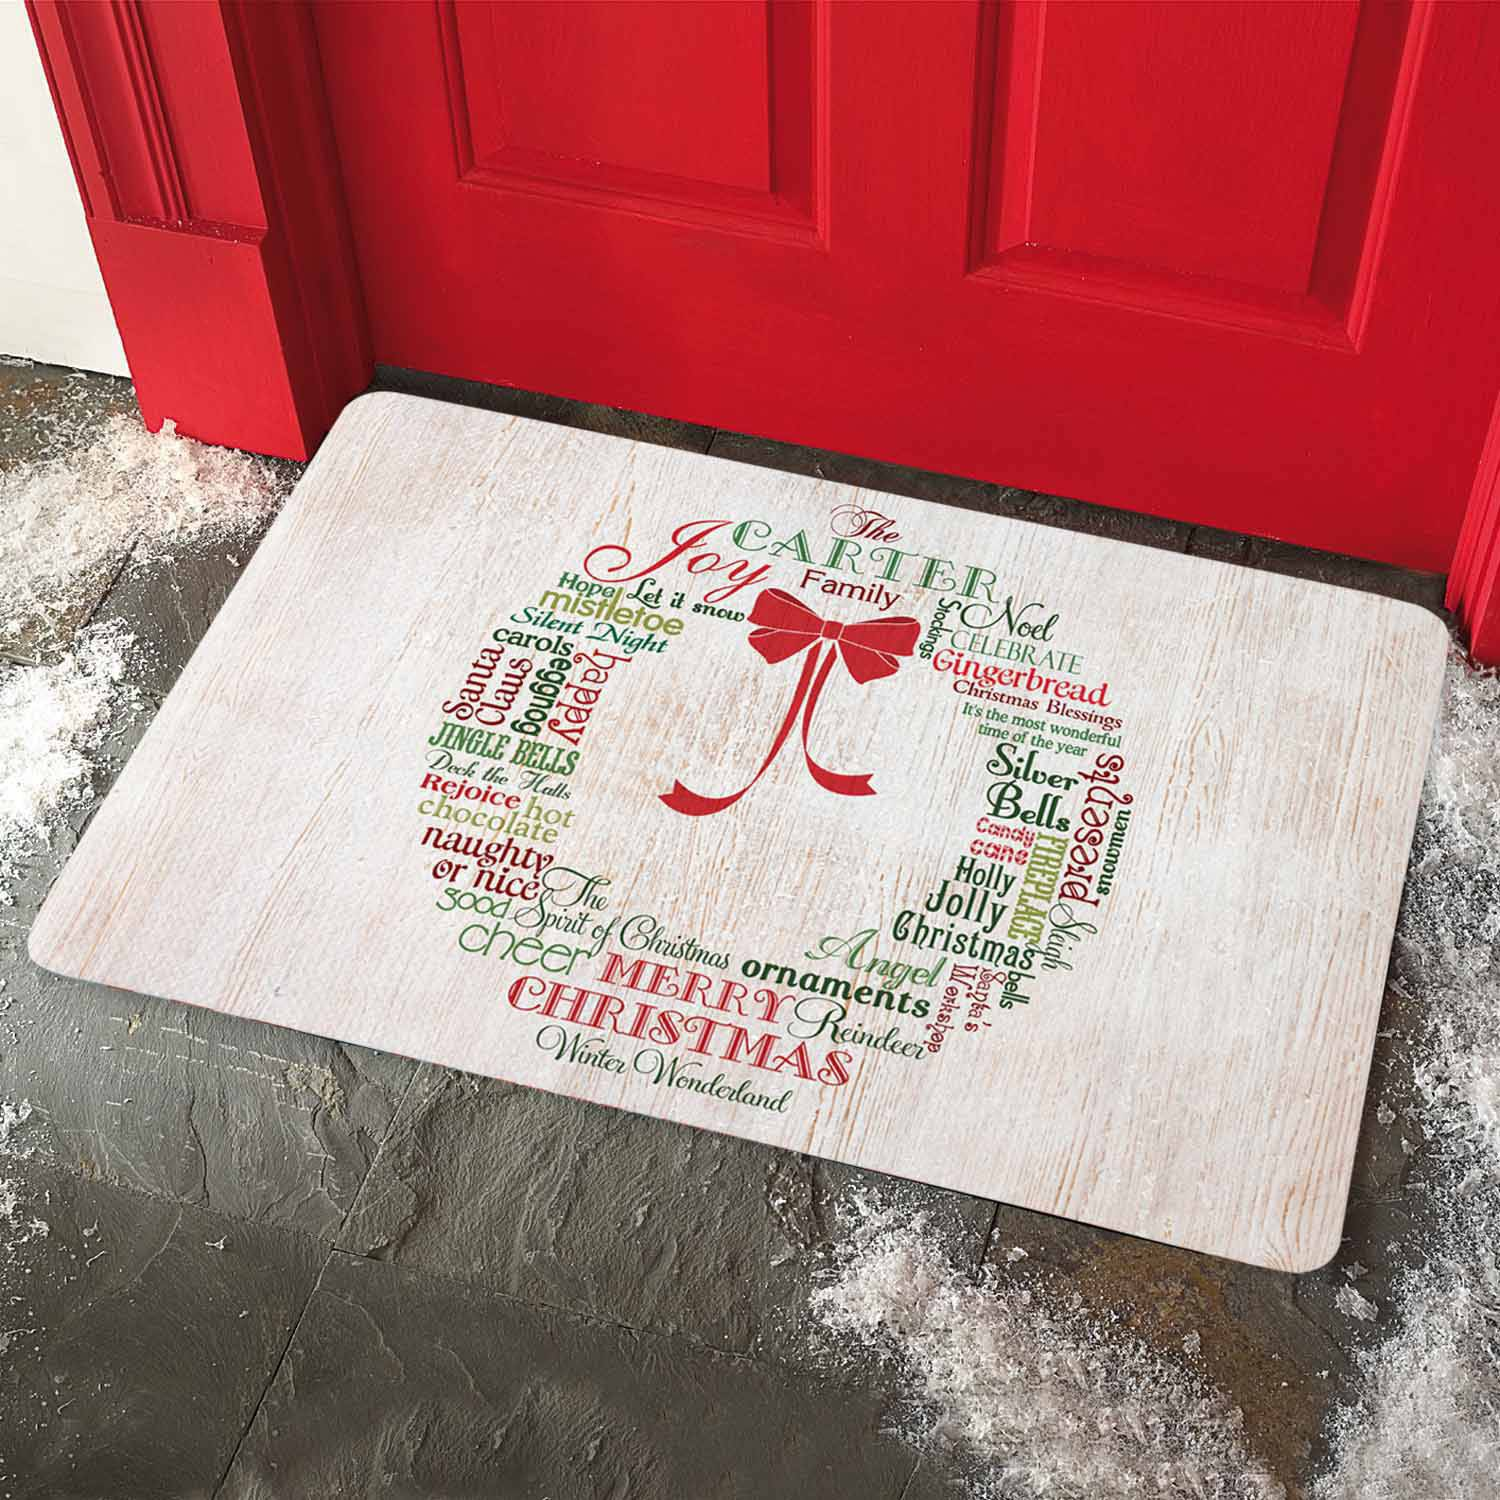 Personalized Christmas Wreath Doormat & Personalized Christmas Wreath Doormat - Walmart.com